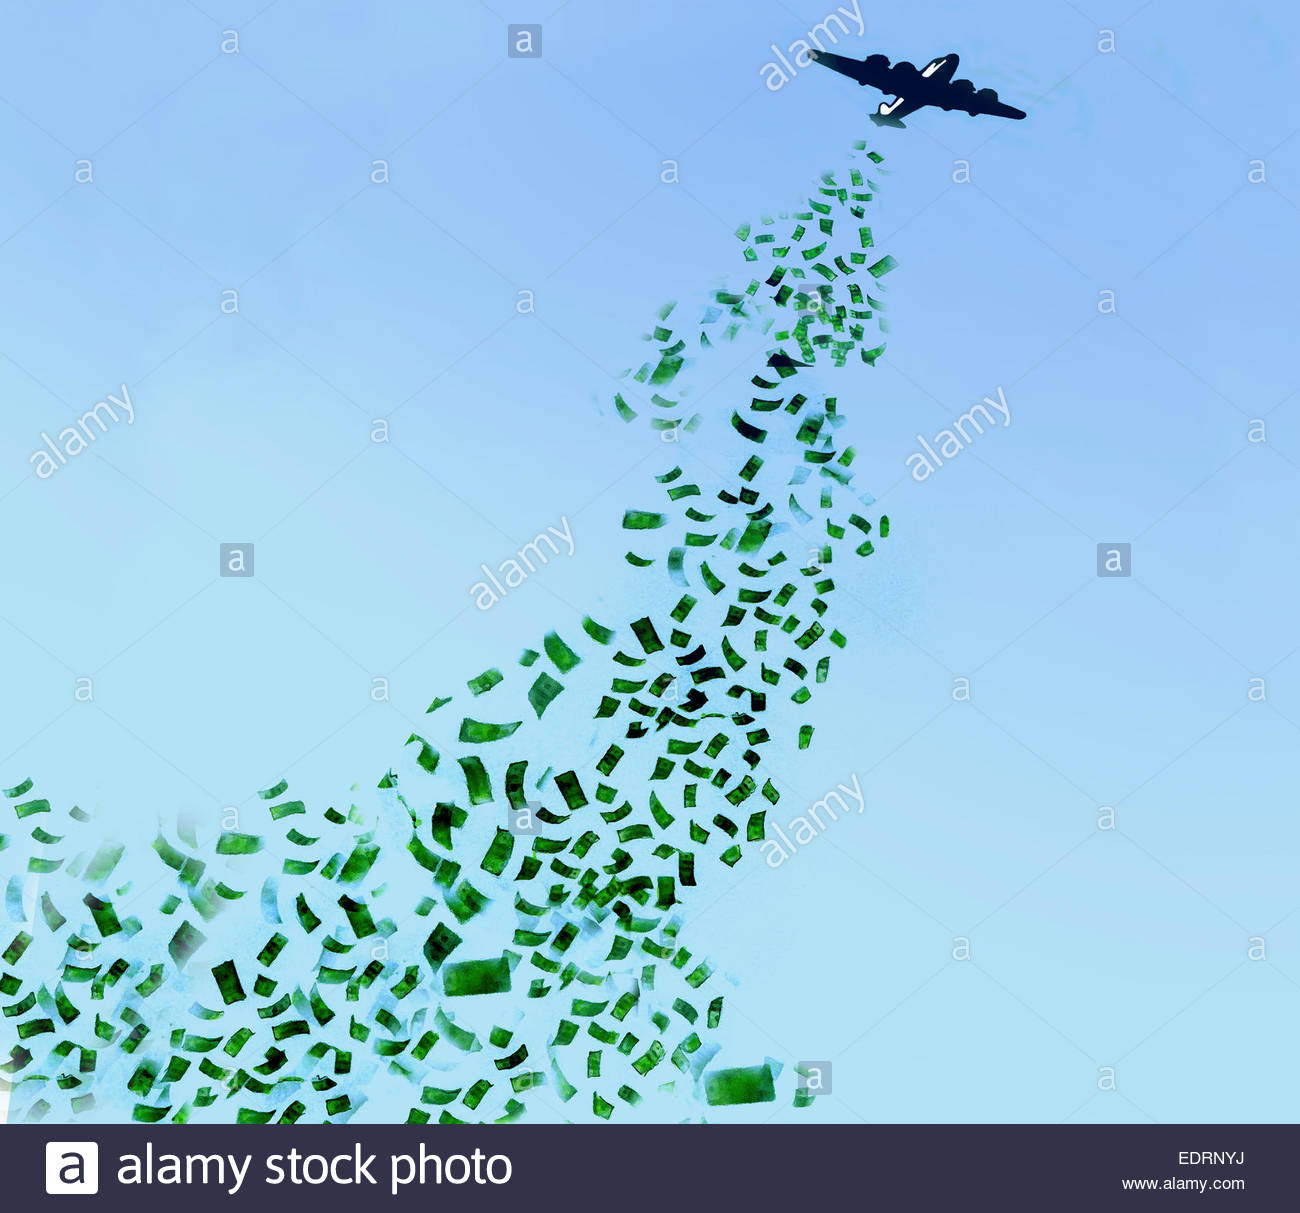 Money falling from flying airplane - Stock Image